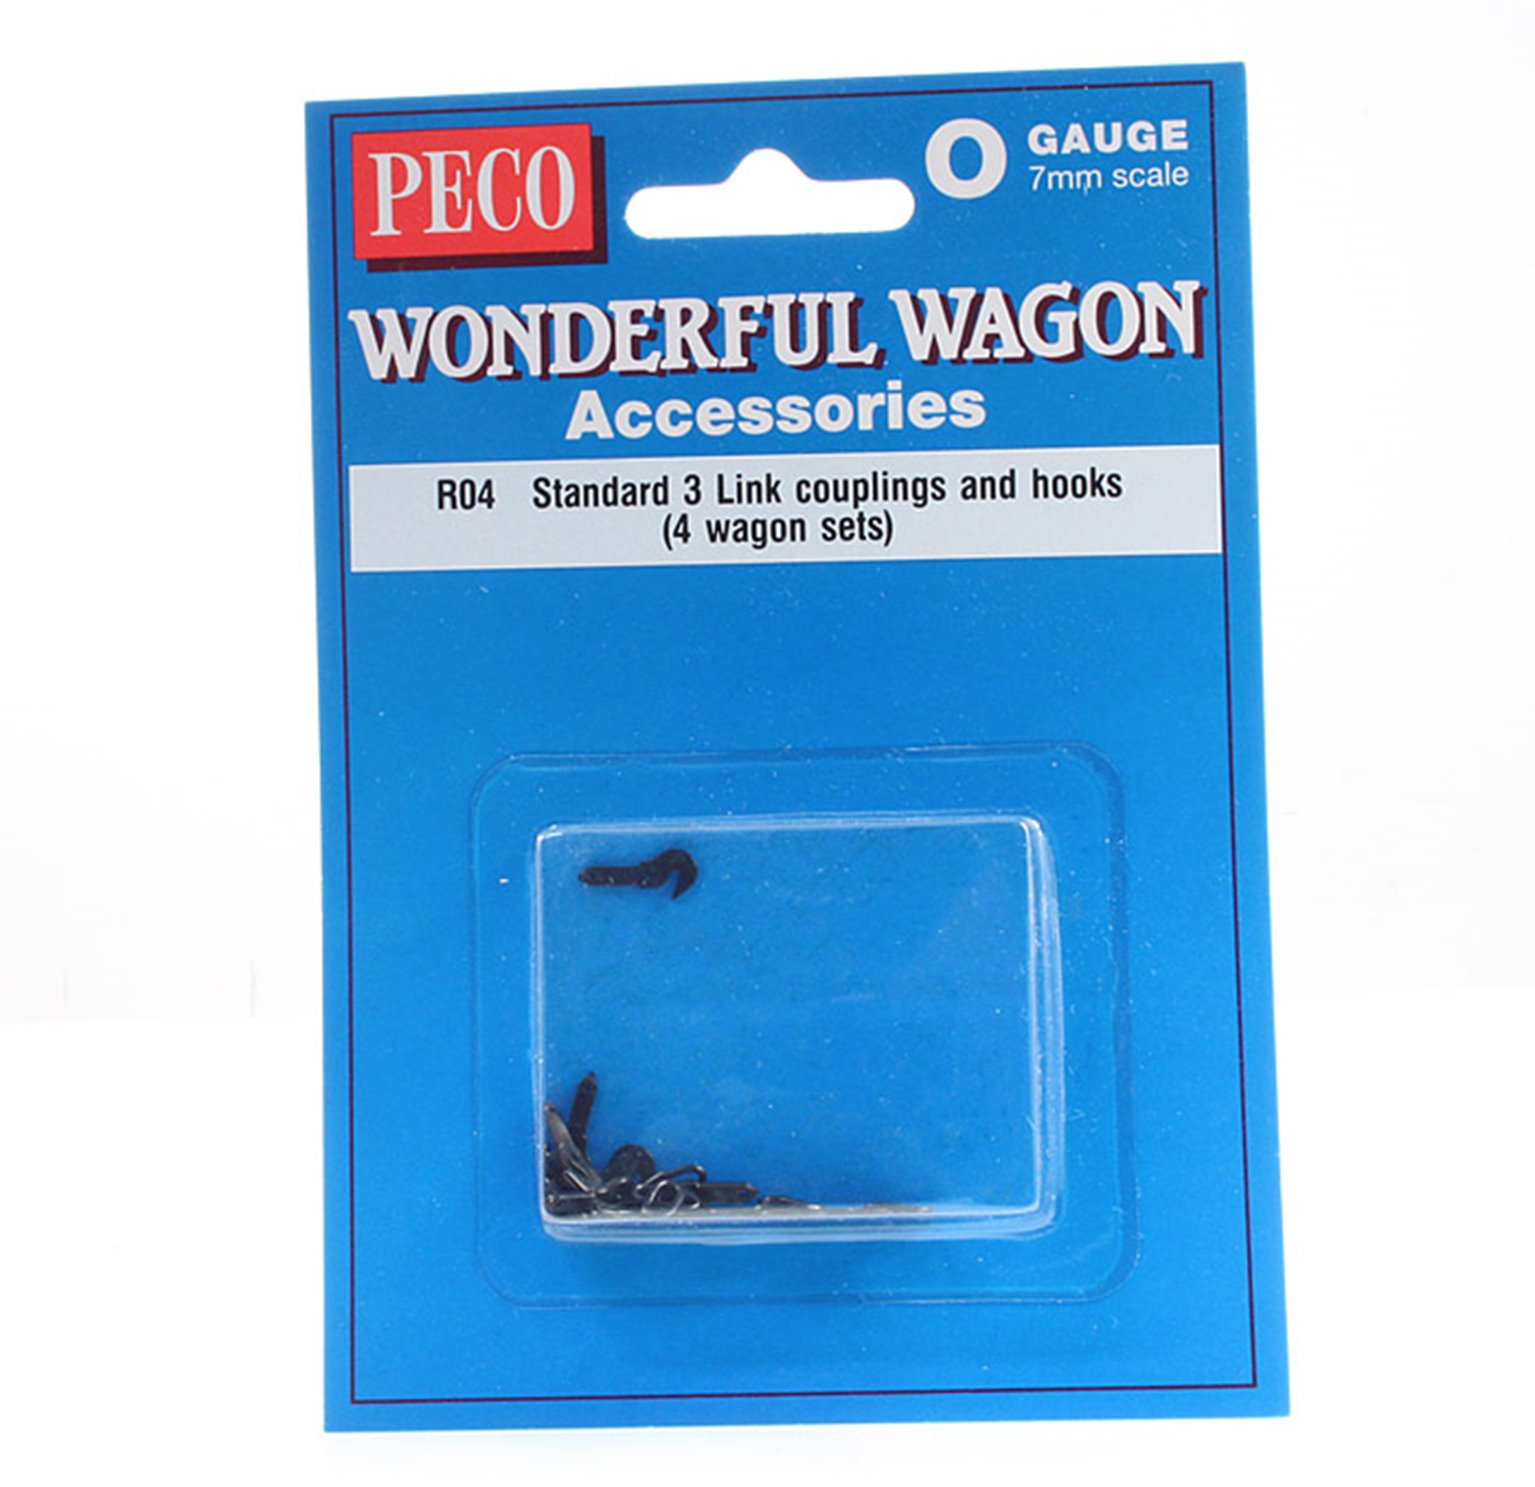 Standard 3 Link couplings and hooks (4 wagon sets)